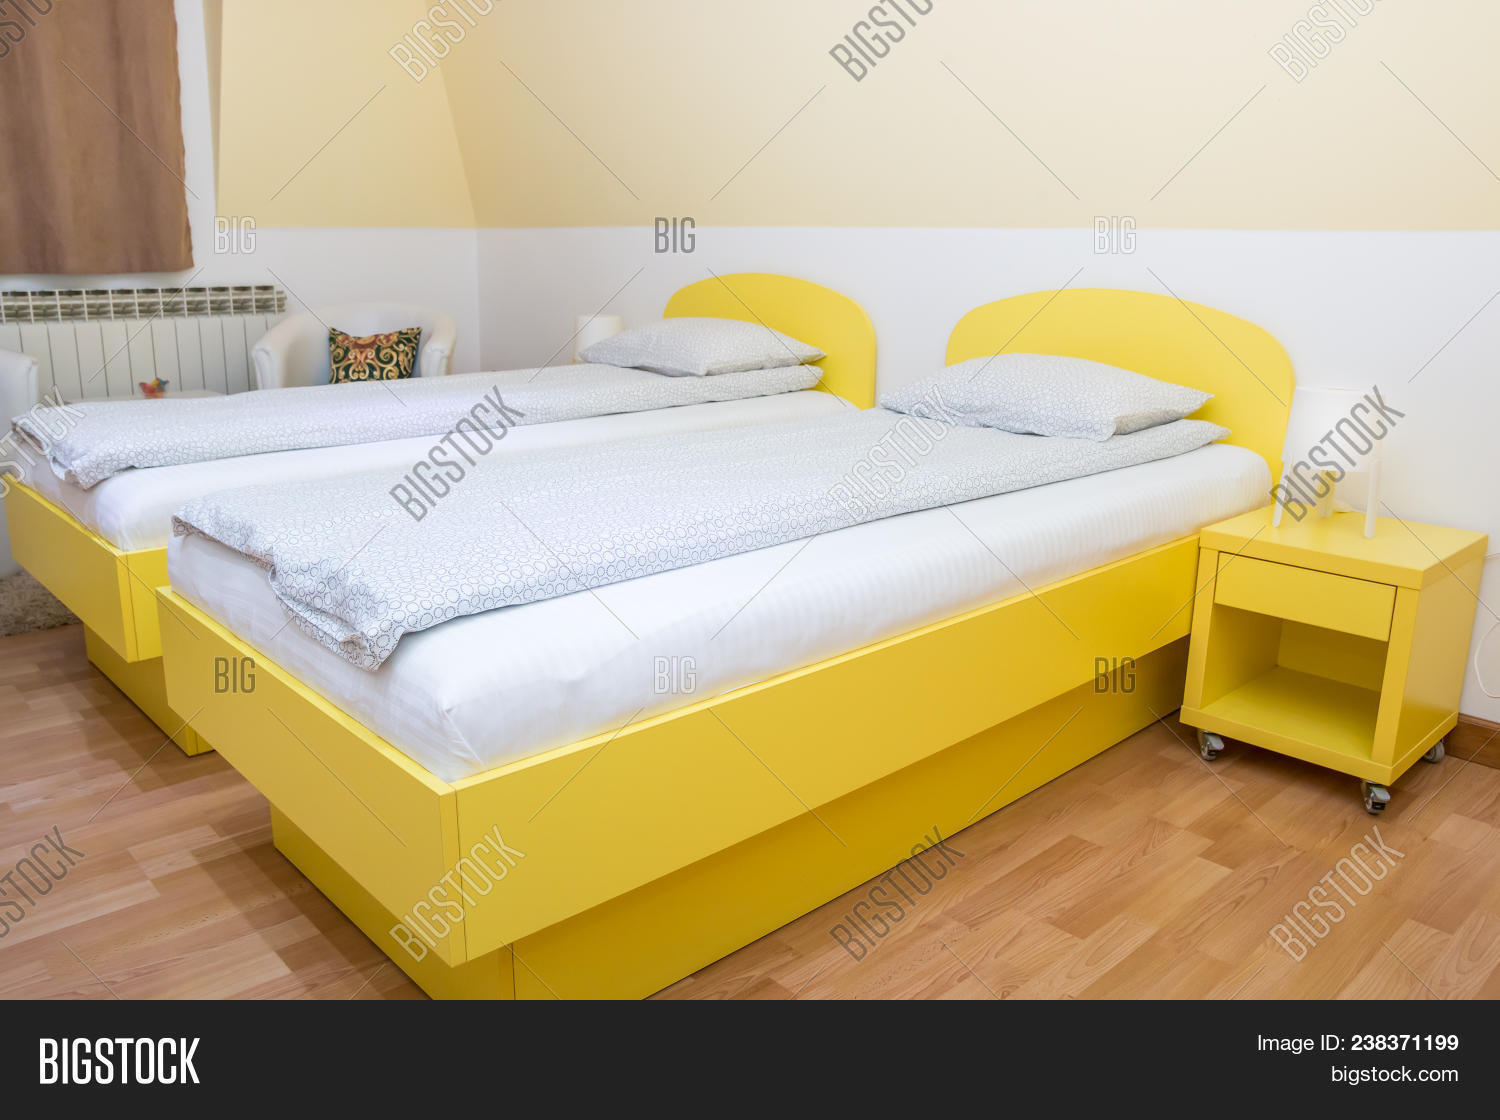 Bedroom Area Studio Image Photo Free Trial Bigstock